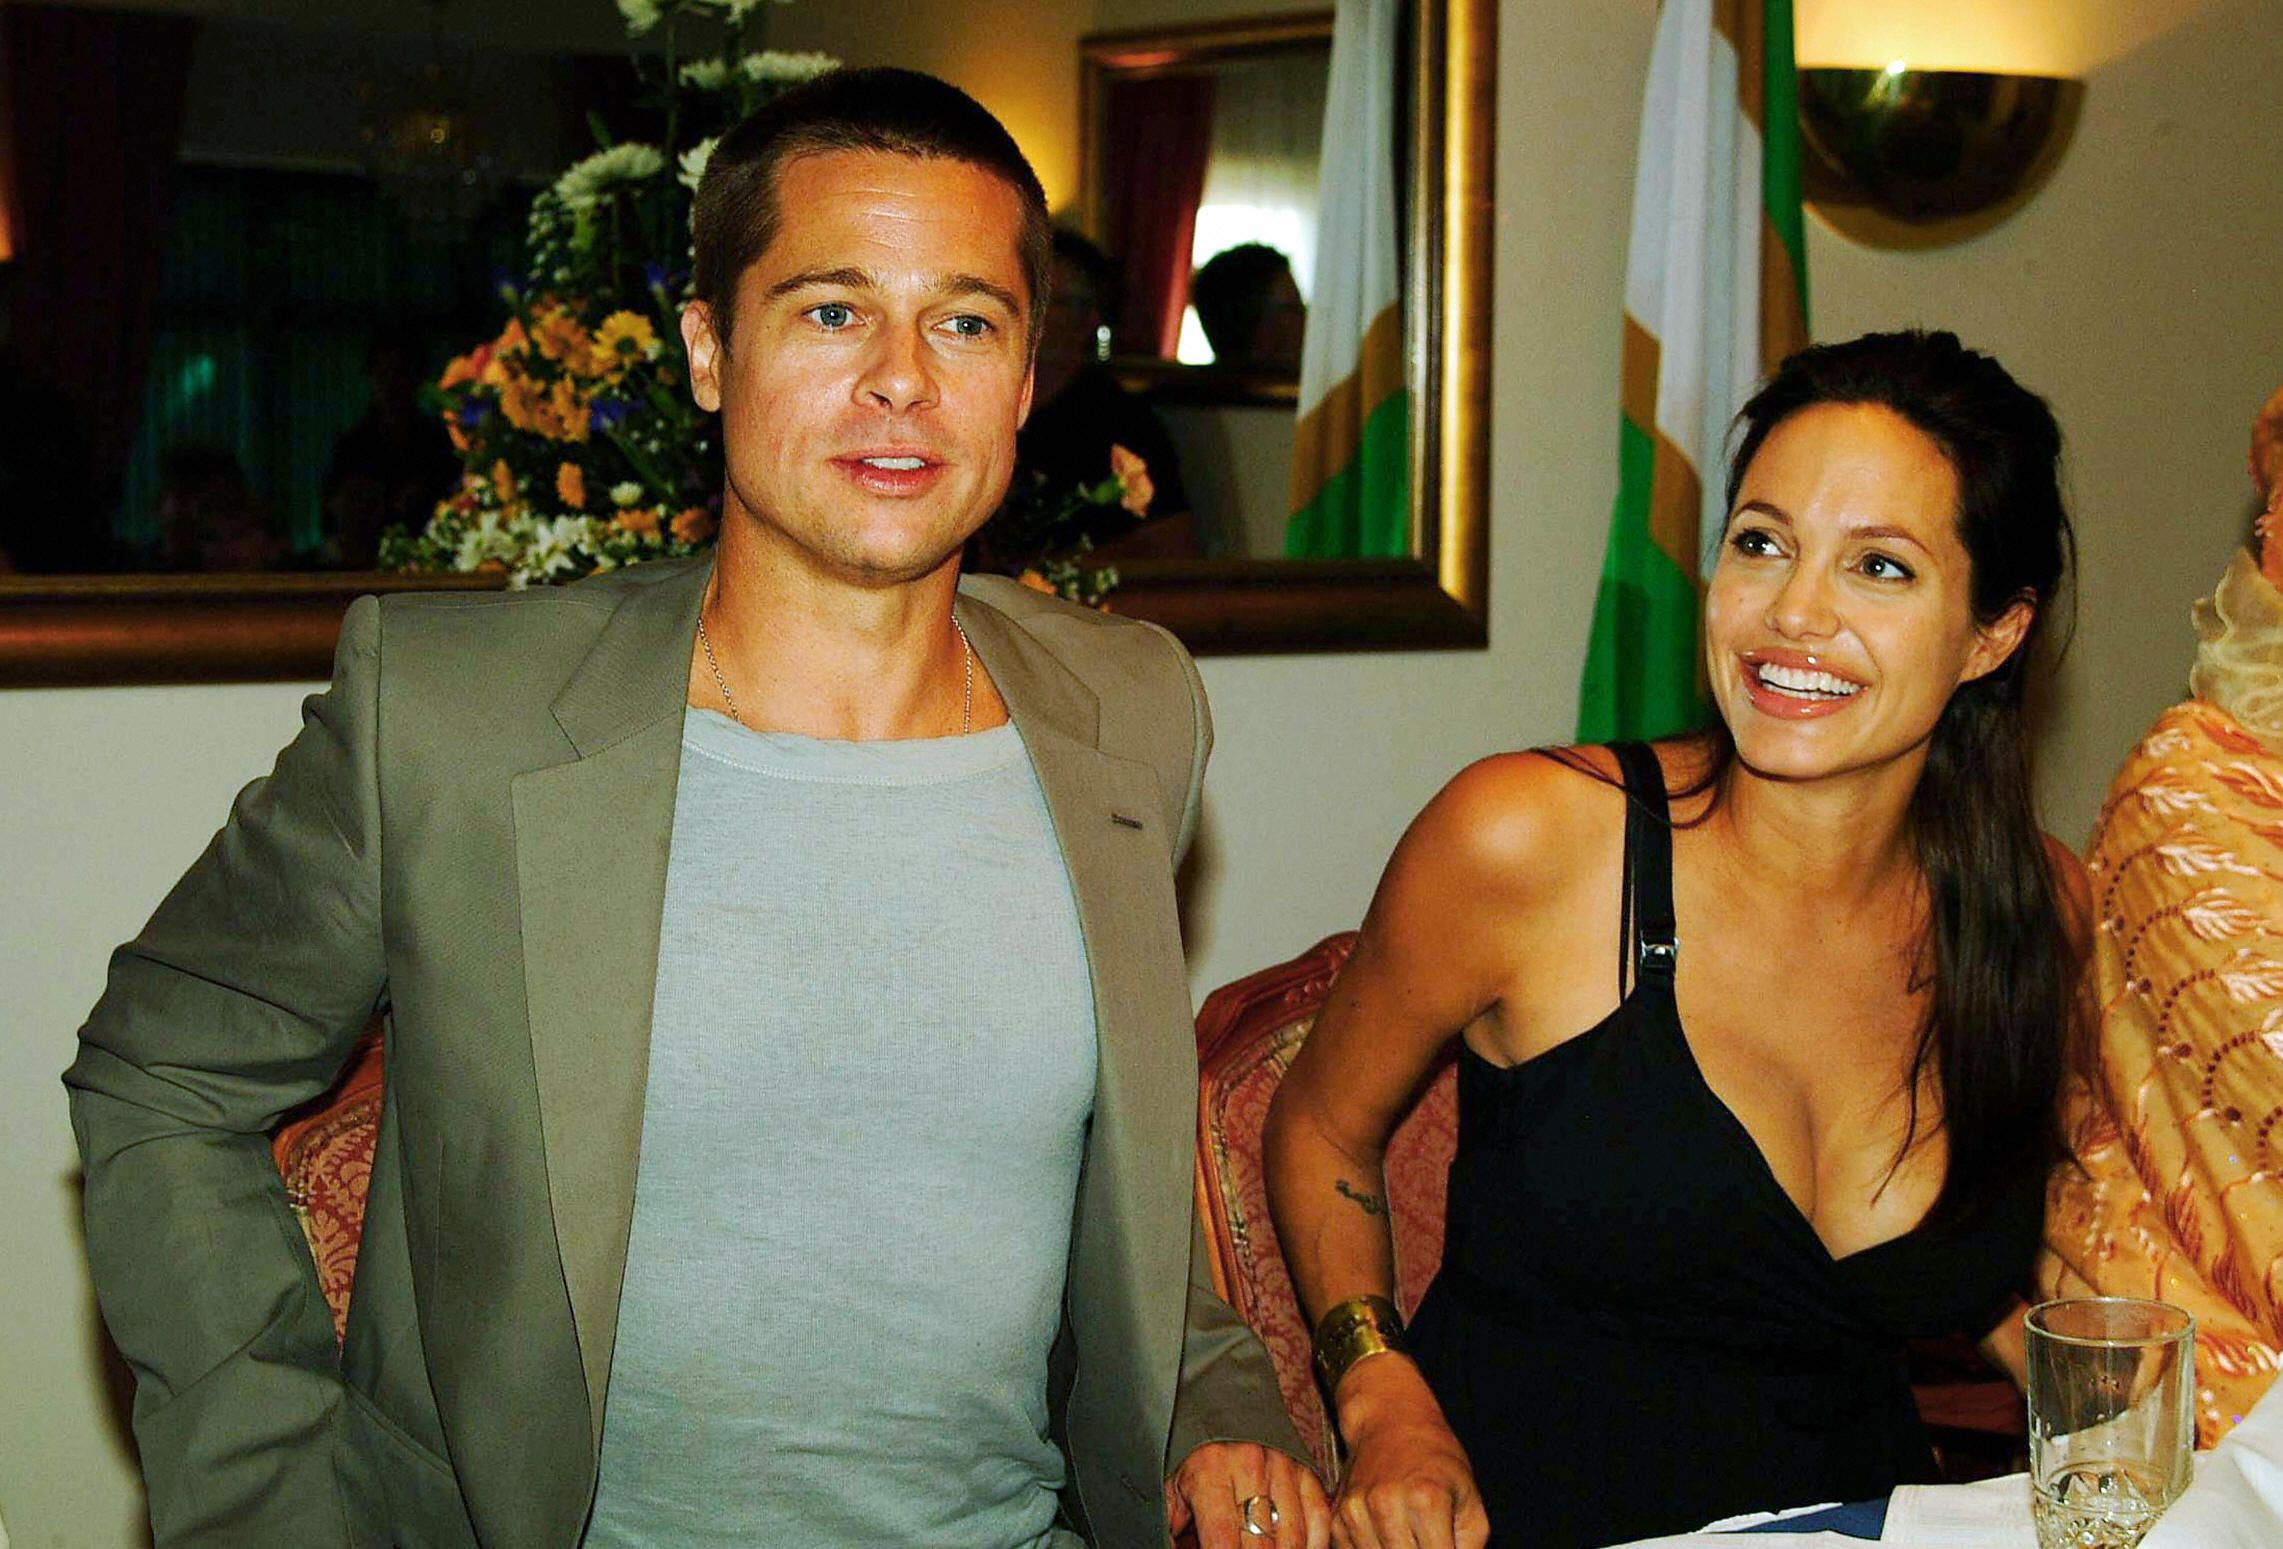 Angelina Jolie and Brad Pitt at a press conference in Namibia, 2006 | Photo: Getty Images